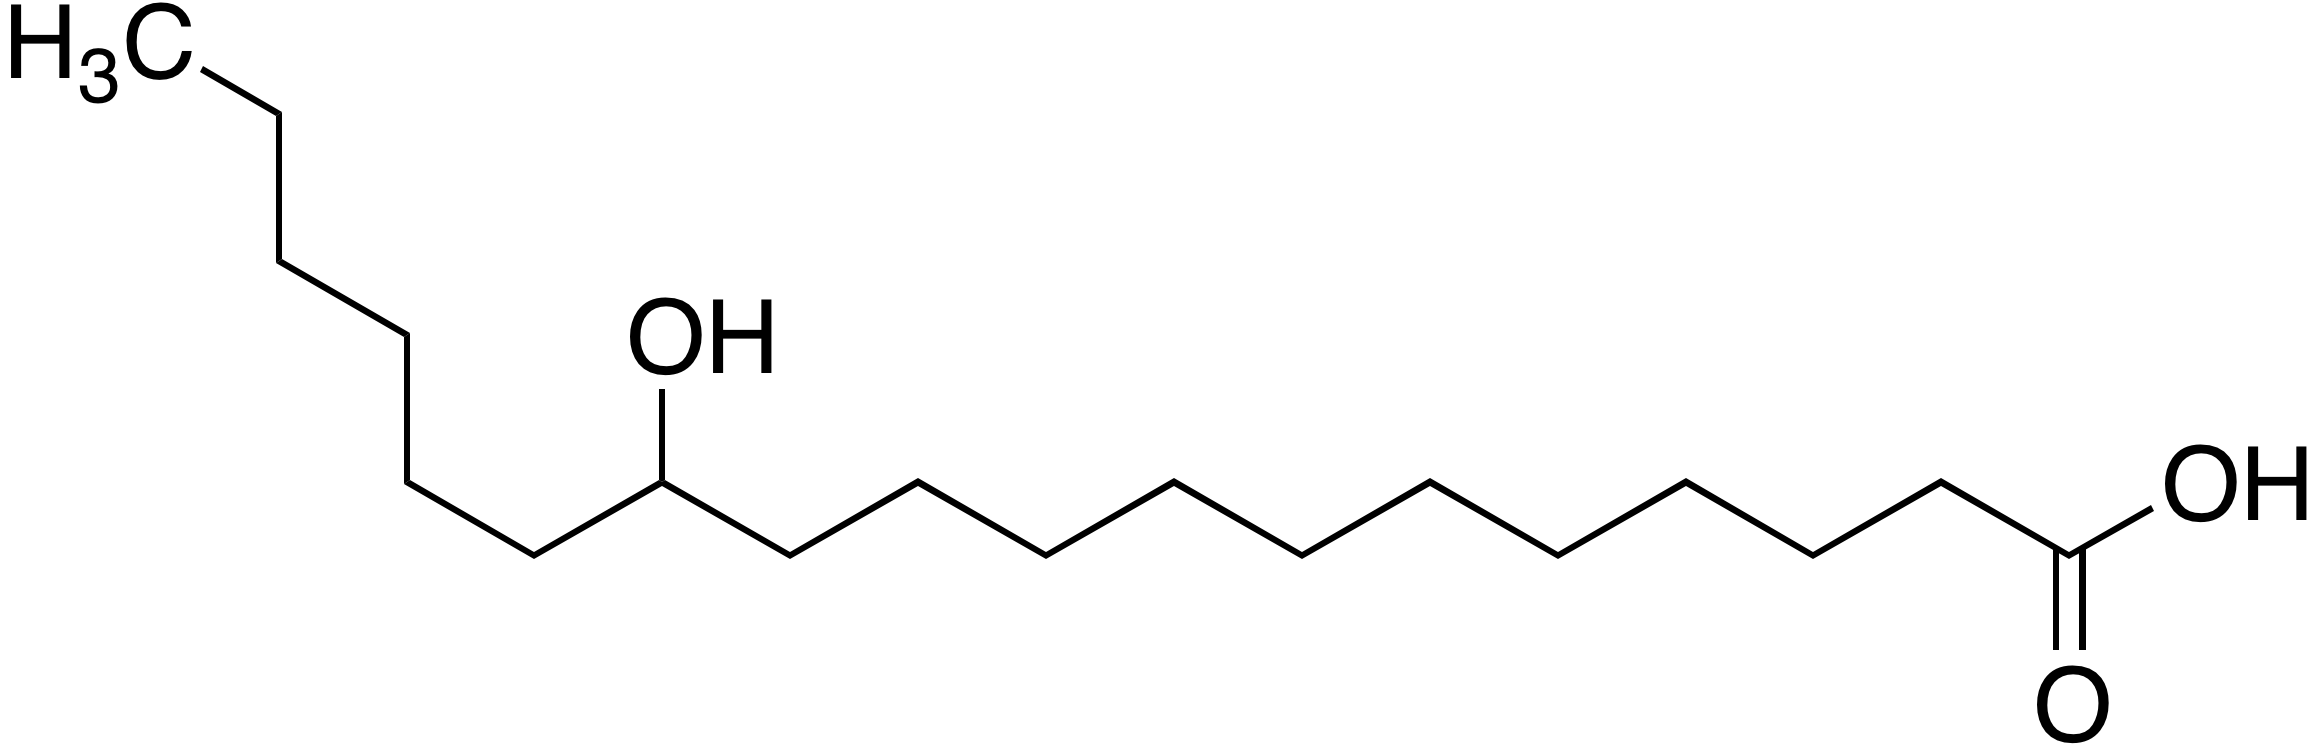 12-Hydroxysteric acid